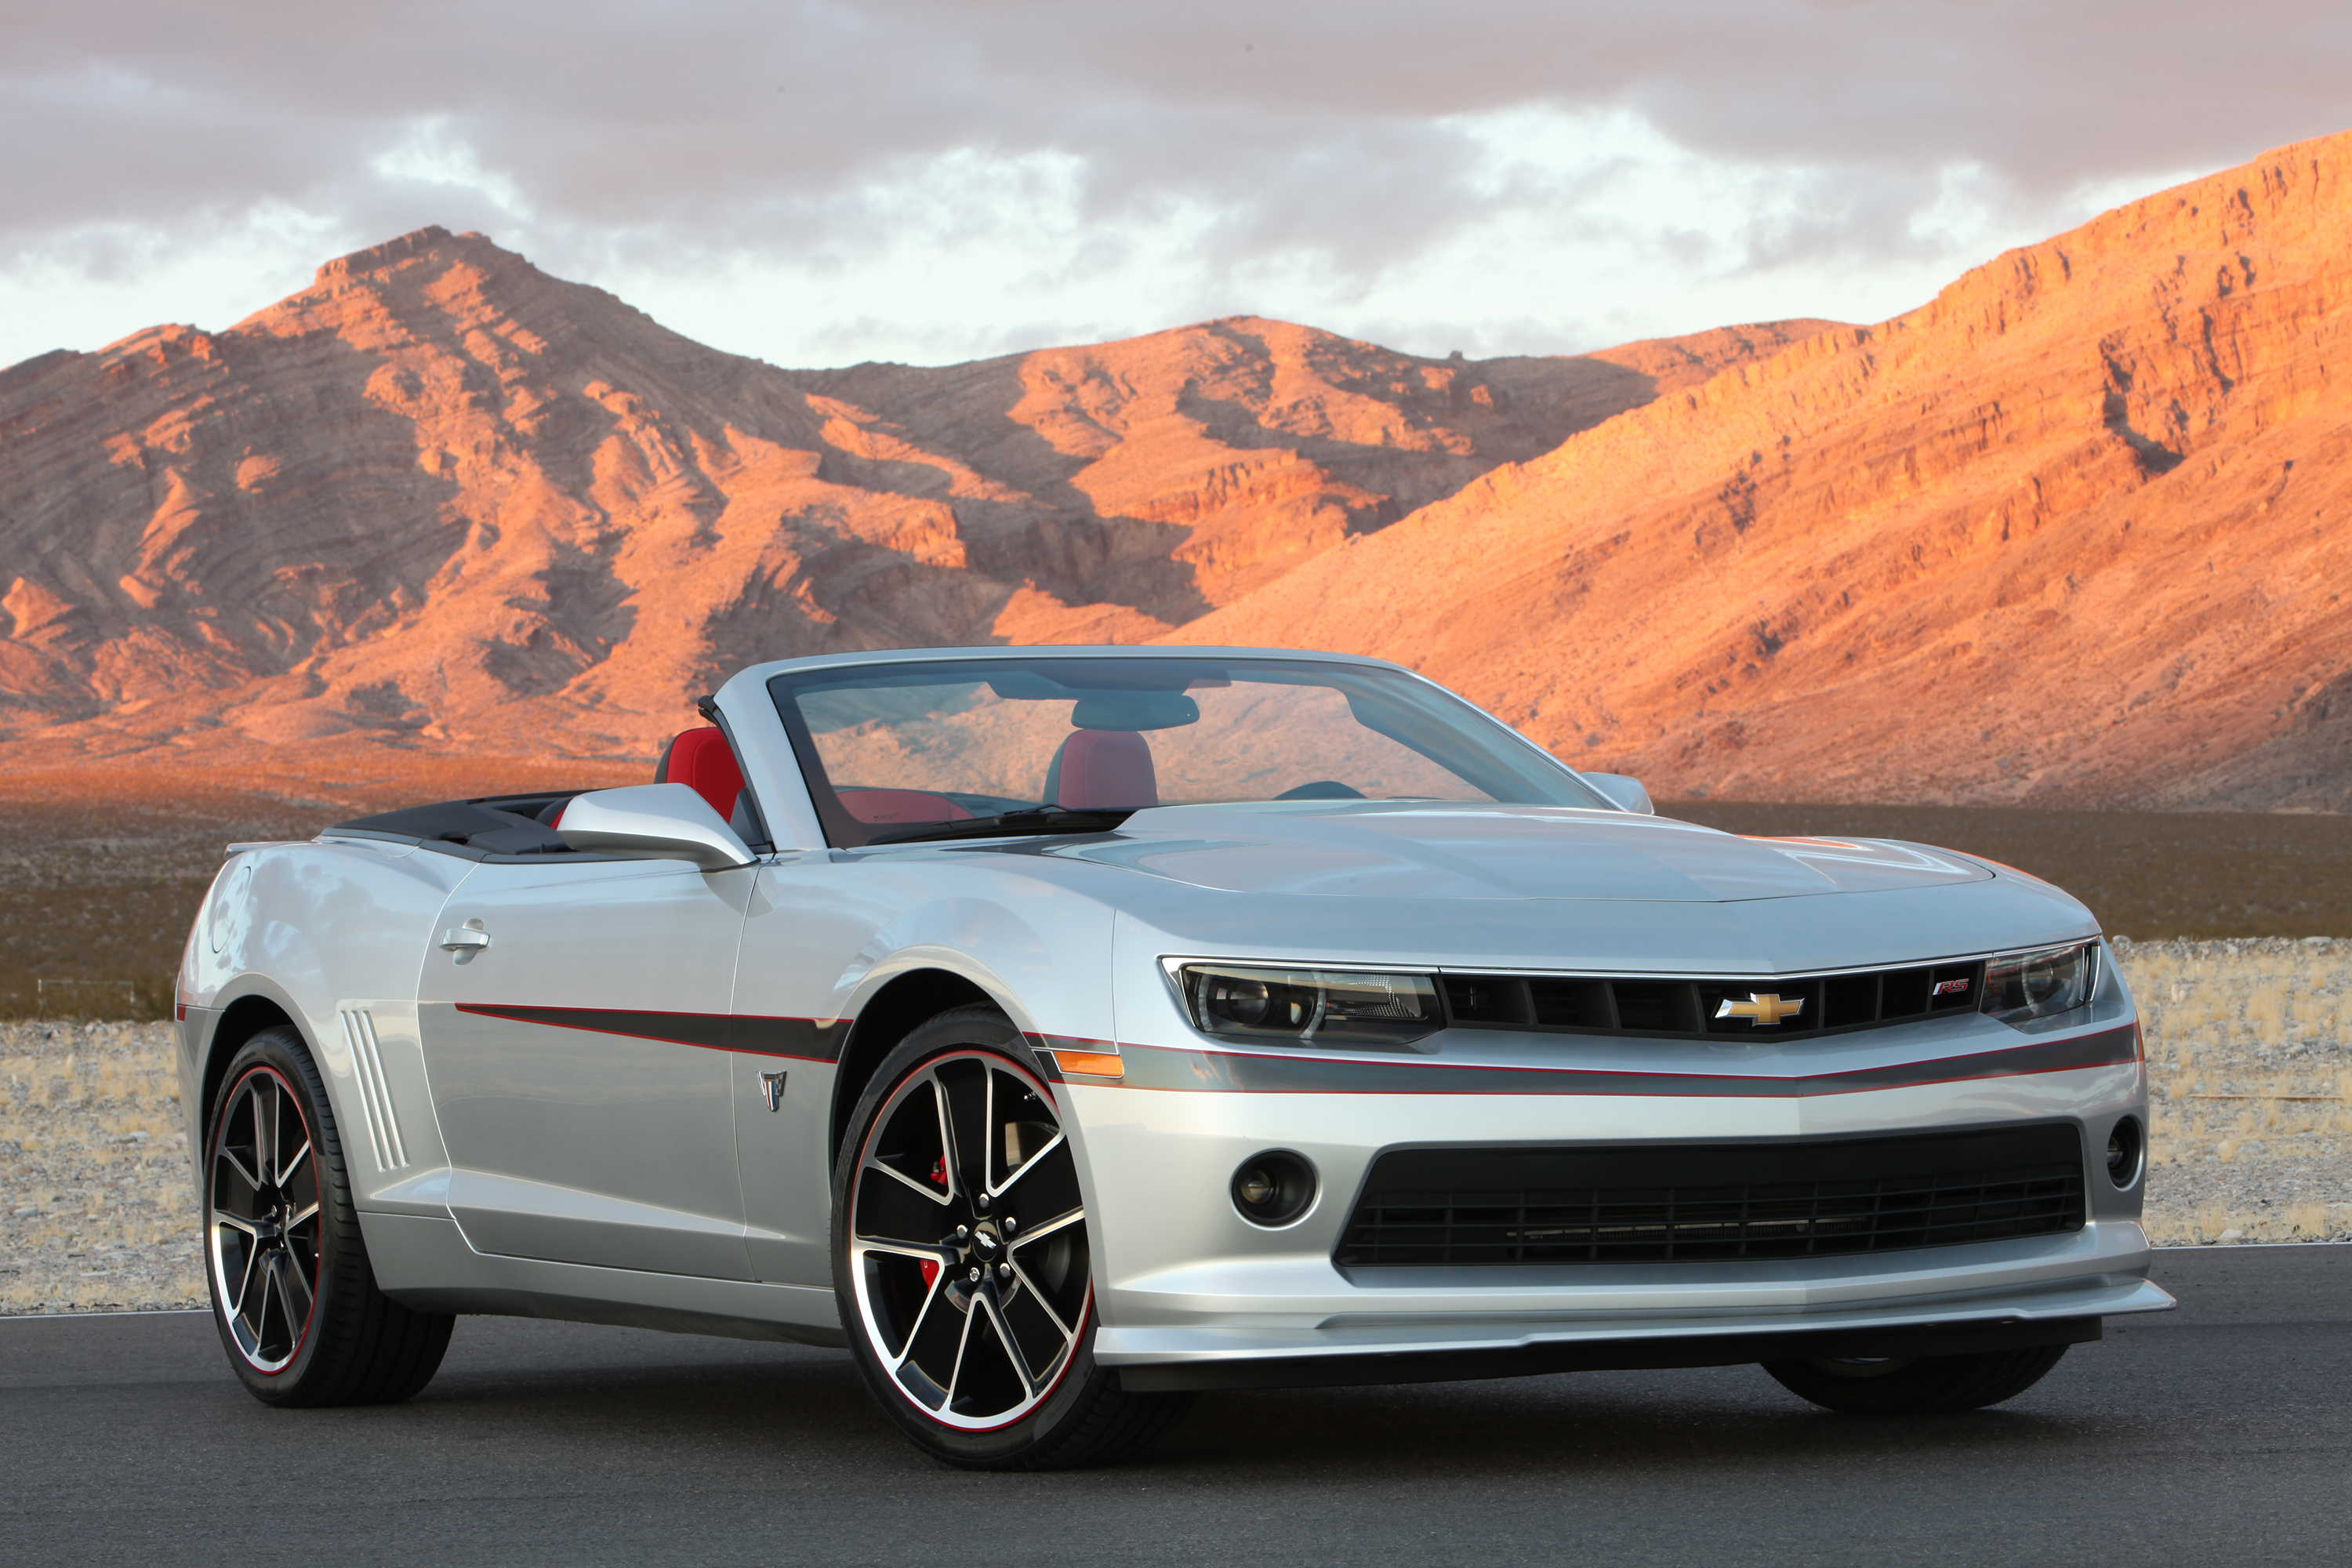 2015 Chevrolet Camaro Commemorative Edition Bows At Sema